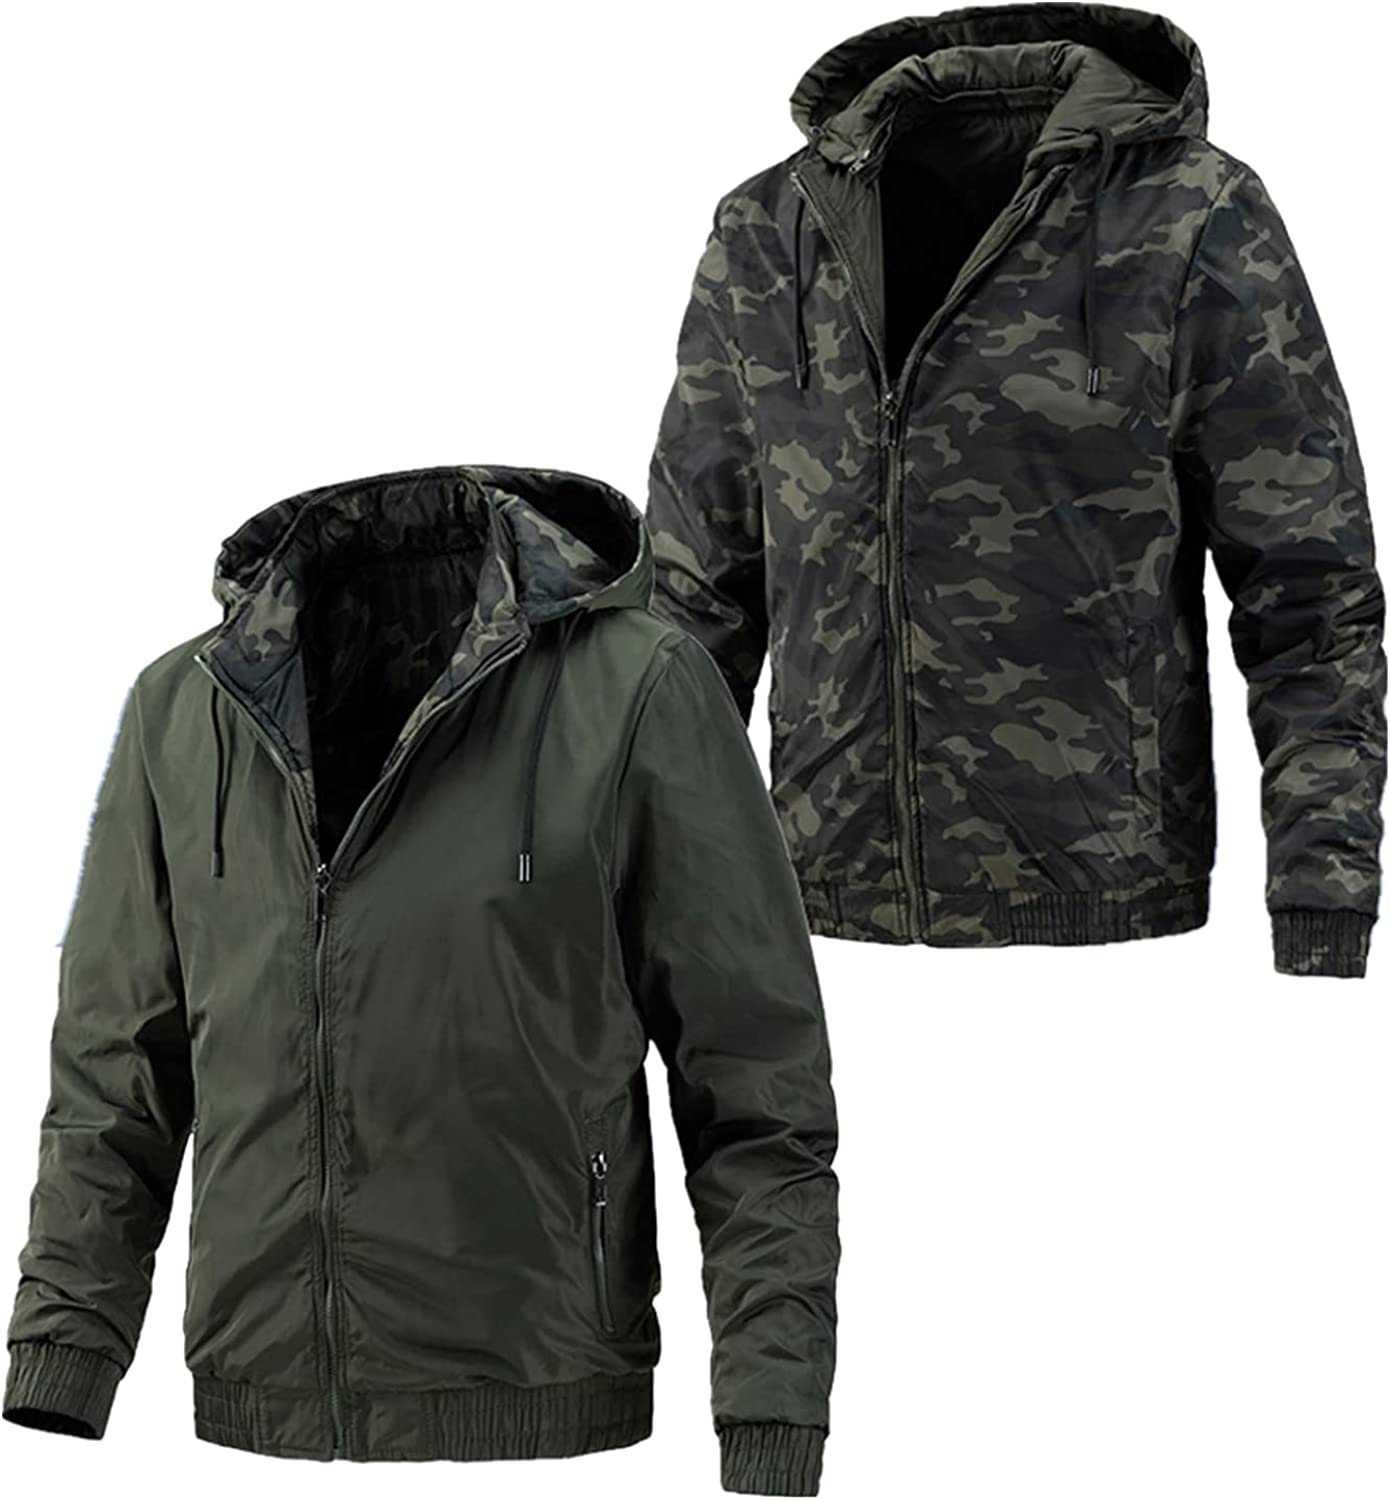 Huangse Mens Camo Jacket On Both Sides Autumn Windproof Hooded Jacket with Pockets Slim Fit Full Zip Coats